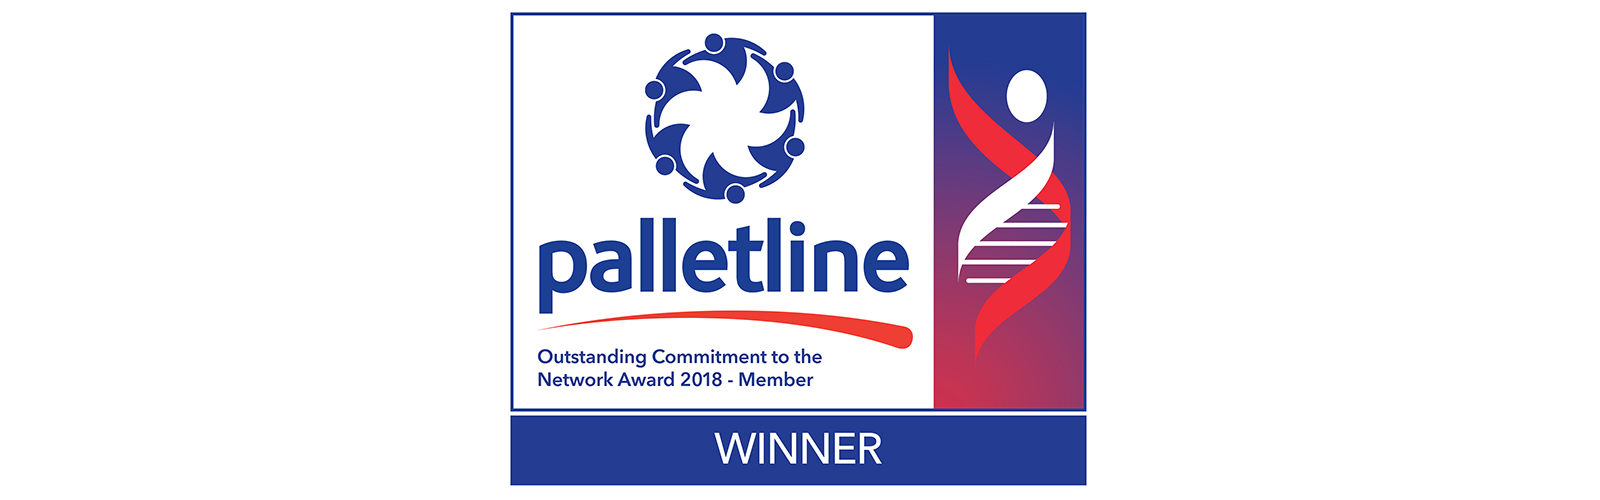 Palletline winner 2018 logo